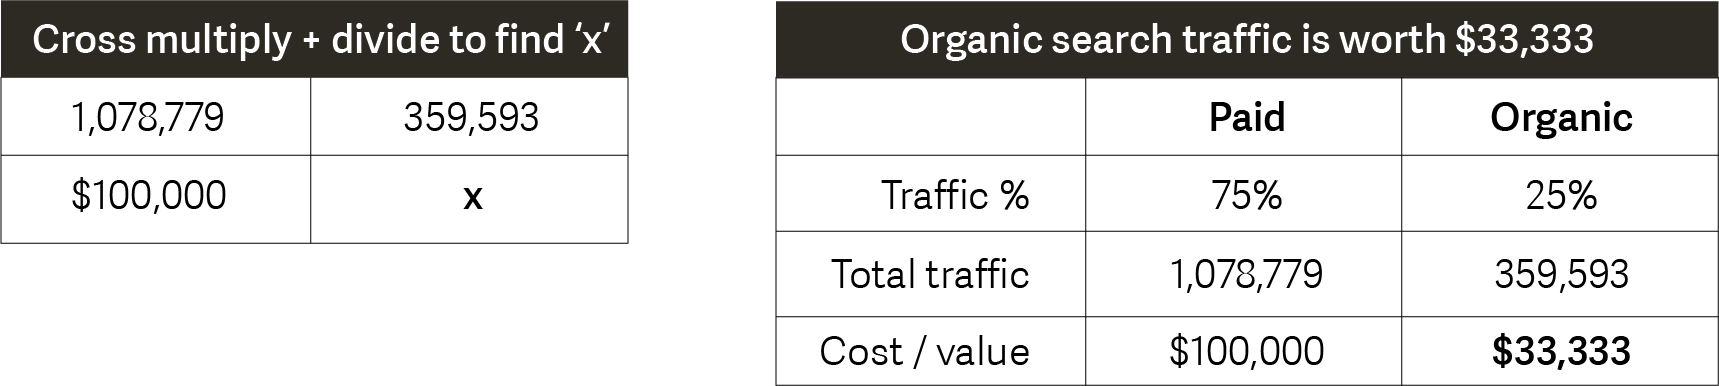 Calculating organic search traffic